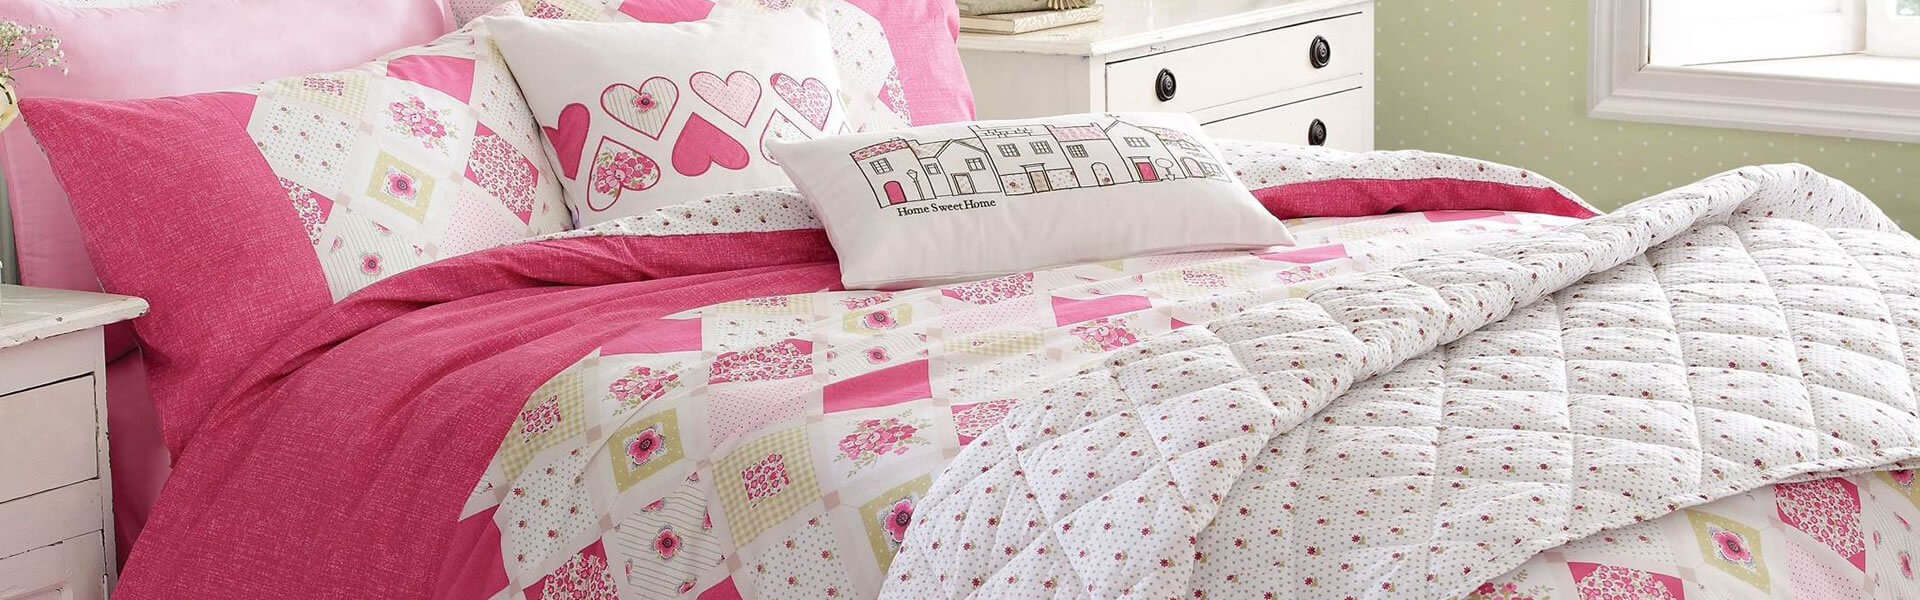 Bedroom Decorating Pink Hearts With The Furnishing Centre